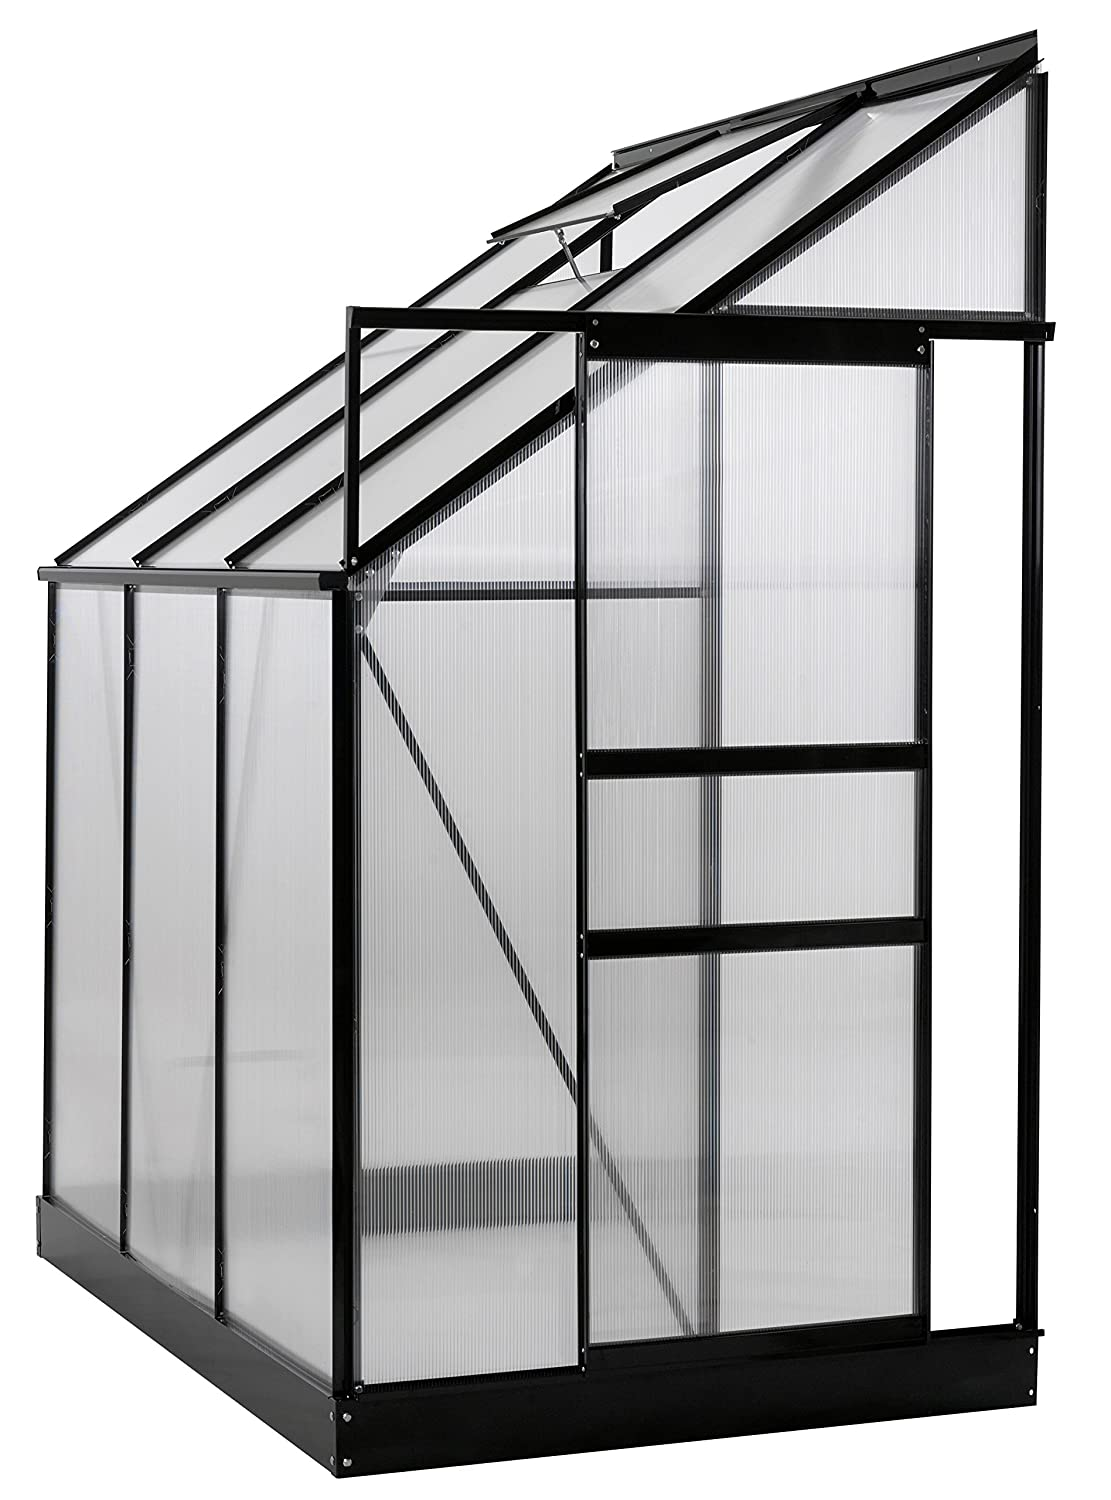 Amazon.com : Ogrow 25 sq.ft. Aluminum Lean-To Greenhouse with 6' x on lean greenhouse plans, lean to style greenhouses, conservatory greenhouse designs, small greenhouse designs, commercial greenhouse designs, glass greenhouses designs, lean to shed attached to house, attached greenhouse designs, barn greenhouse designs, home greenhouse designs, garden greenhouse designs, diy greenhouse designs, greenhouse plans designs, unique greenhouse designs, lean to gardening, indoor greenhouse designs, wood framed greenhouse designs, greenhouse product designs, lean to greenhouses cheap, large greenhouse designs,